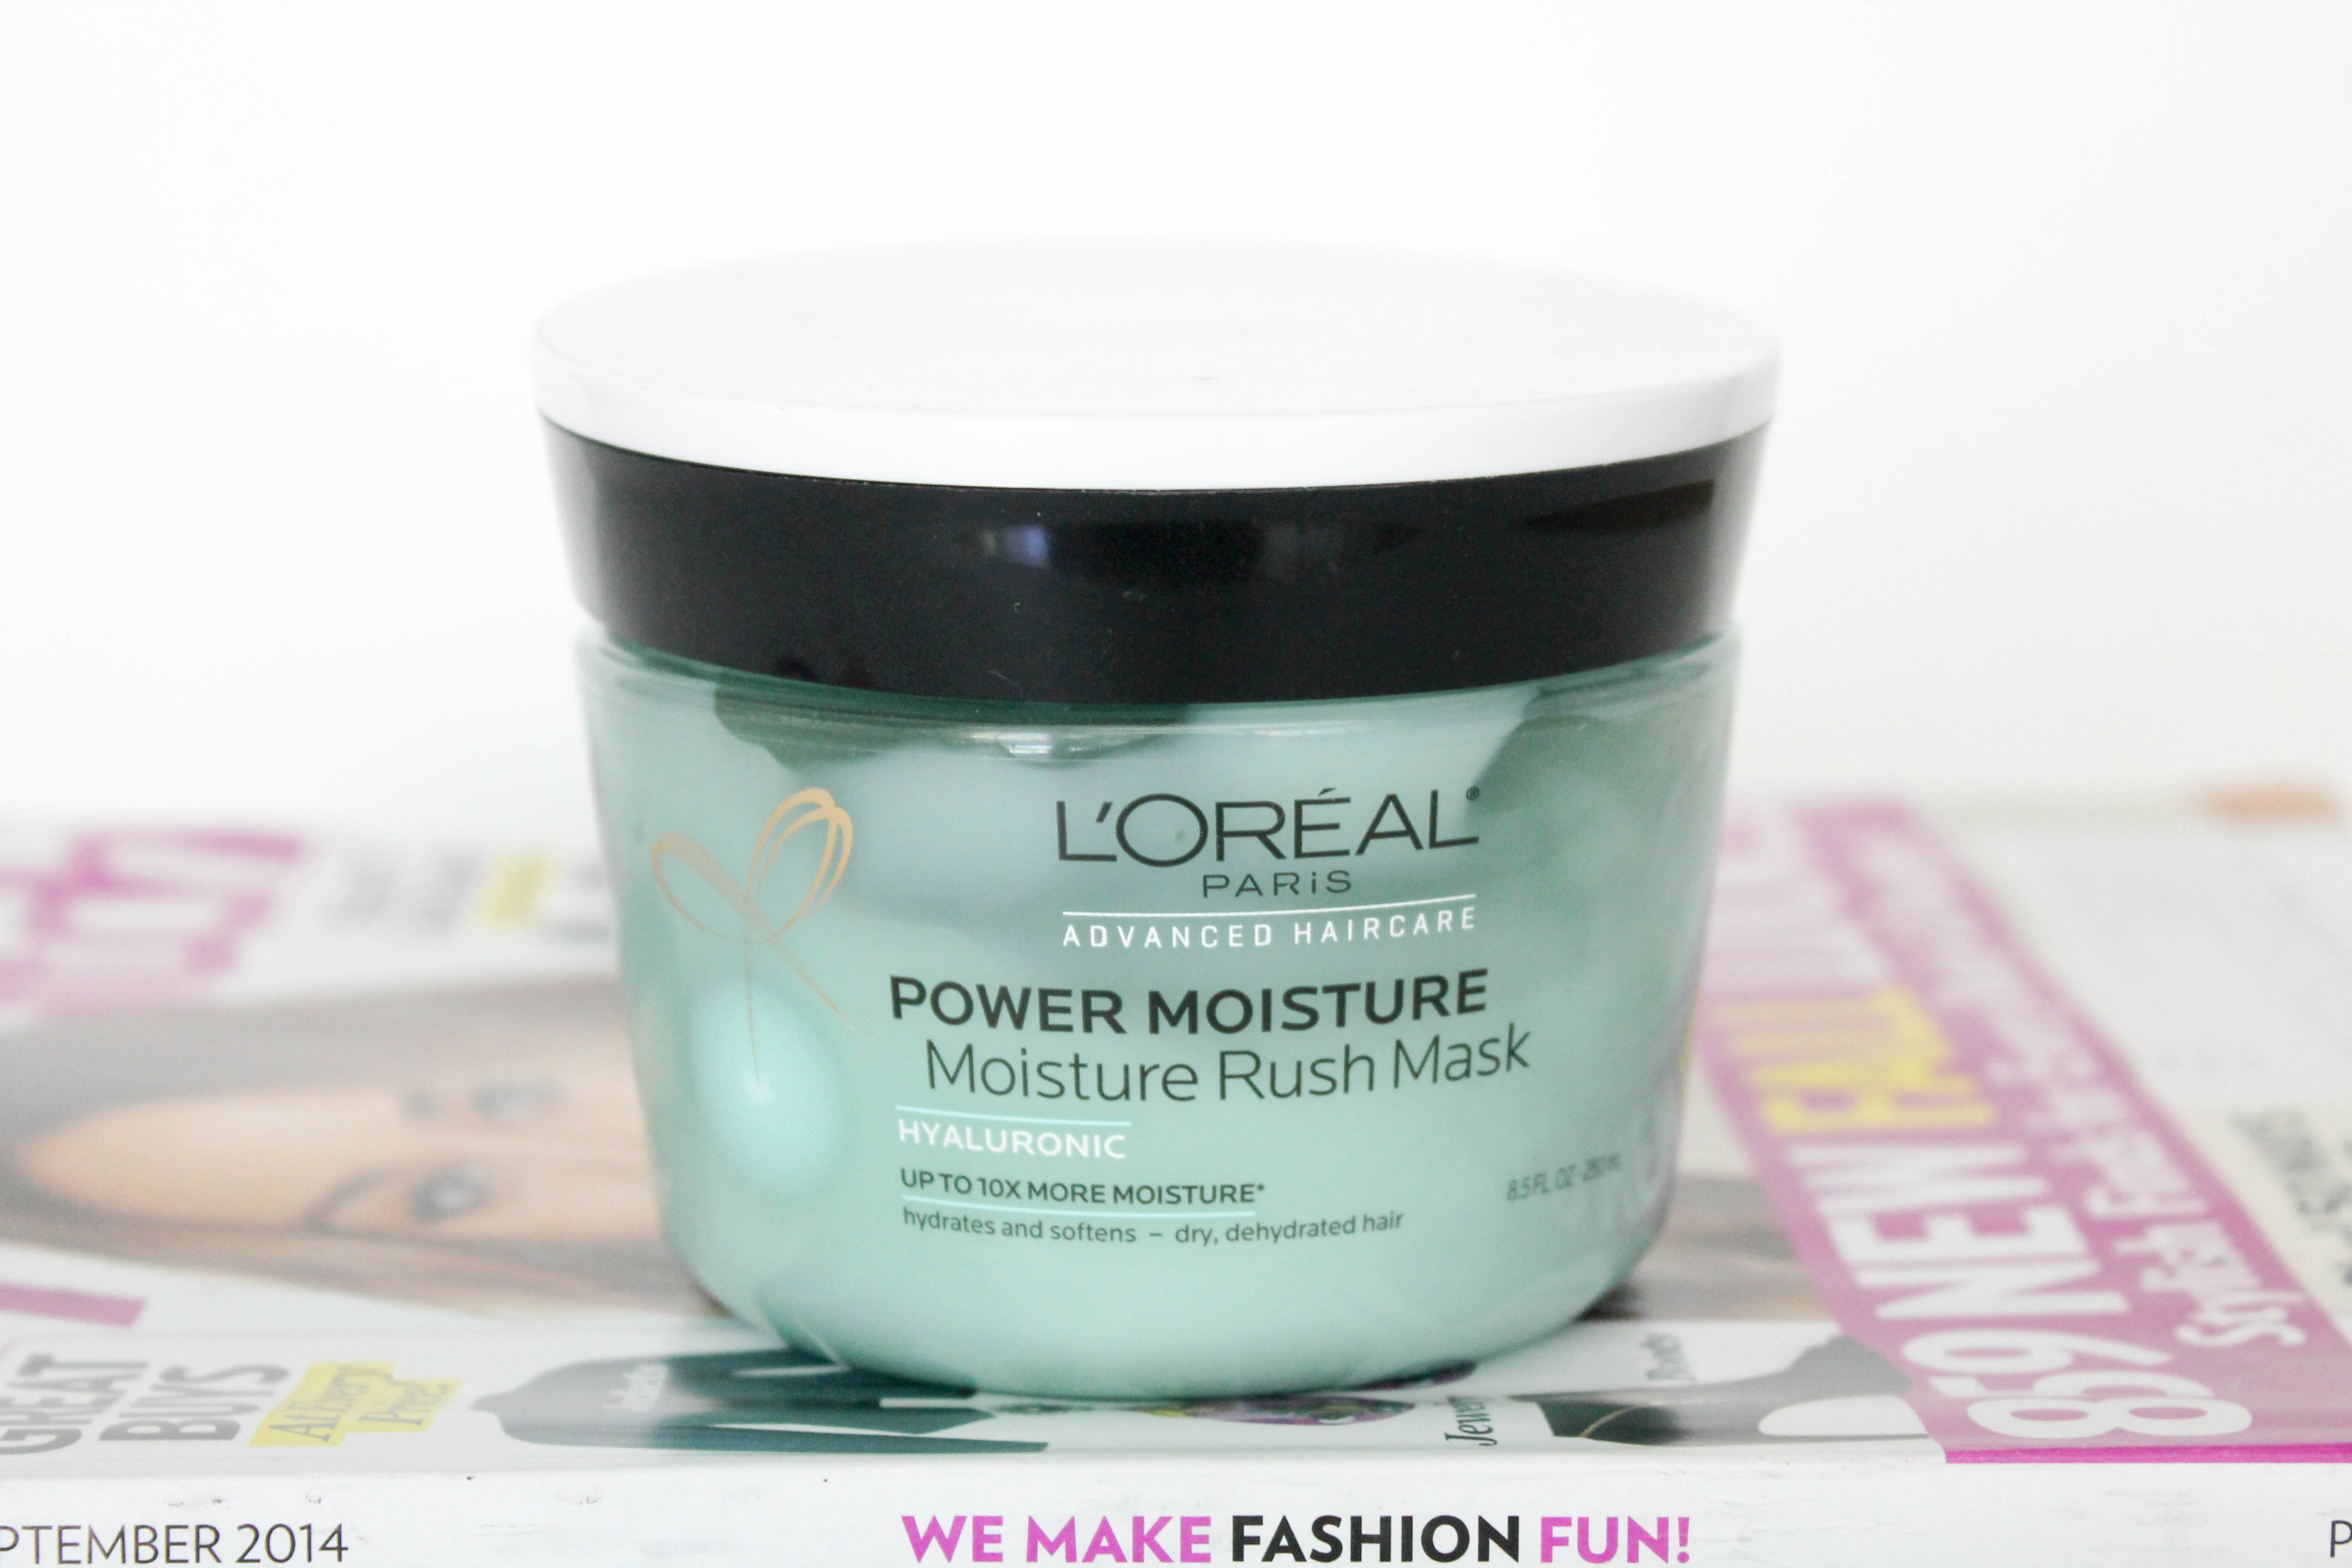 hair mask review, loreal power moisture rush mask review, loreal hair mask, loreal hair mask review